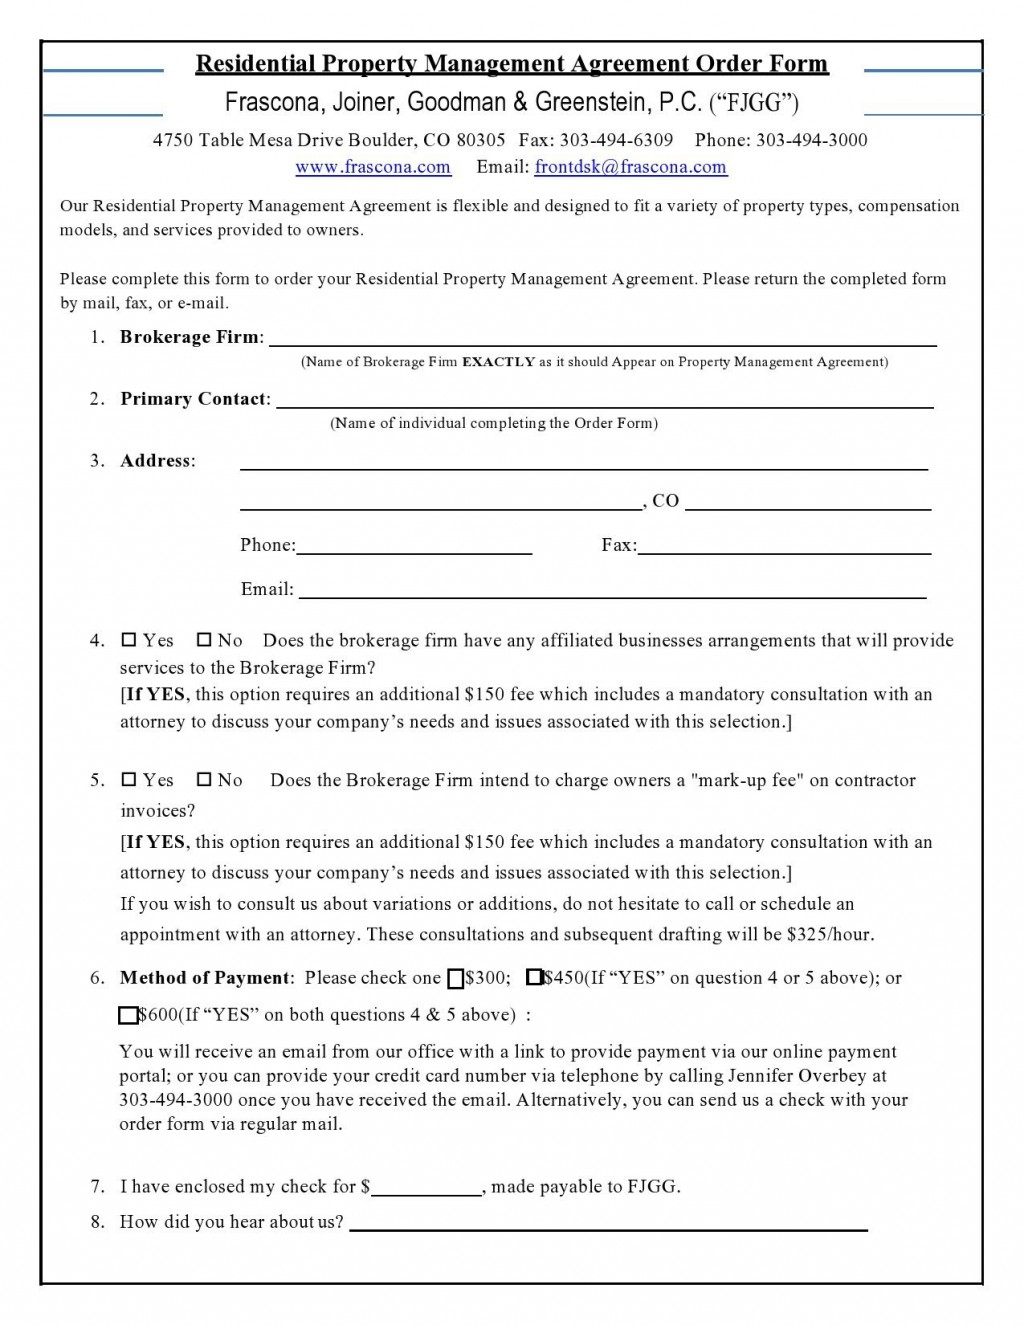 006 Unforgettable Property Management Agreement Template Picture  Templates Sample Termination Of Commercial FormLarge